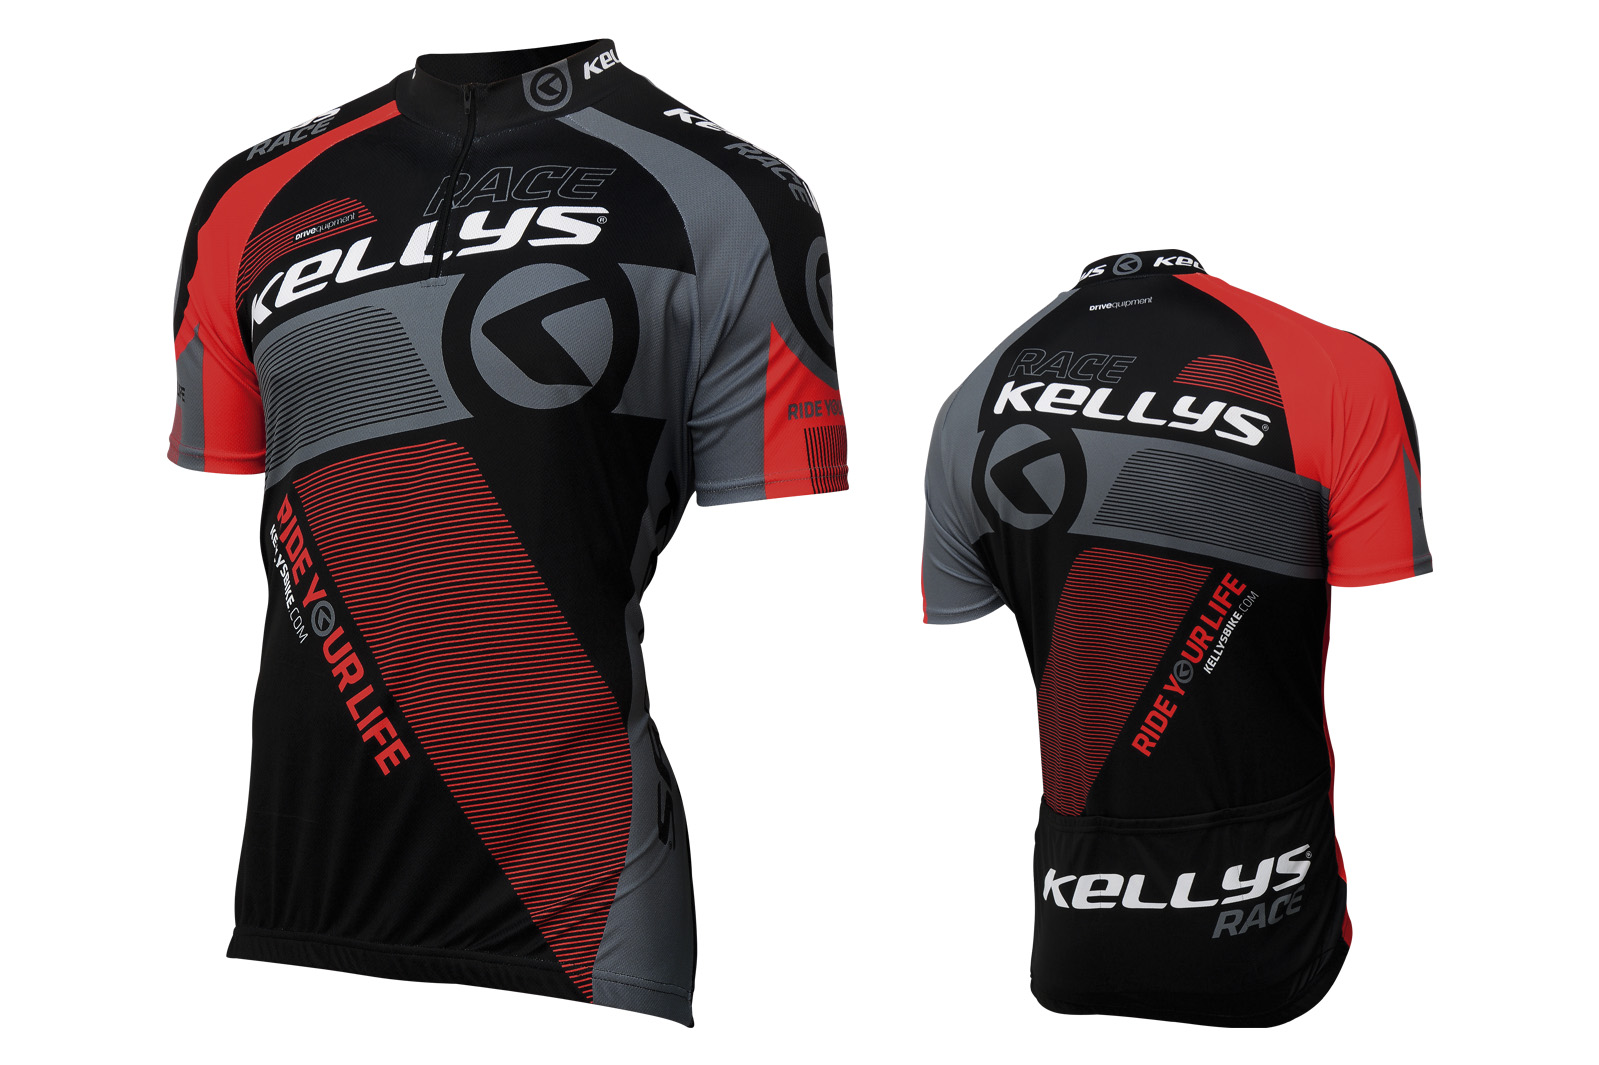 Kurzarmtrikot KELLYS PRO Race red - XS - Sport Cycling Meindl - professional cycling